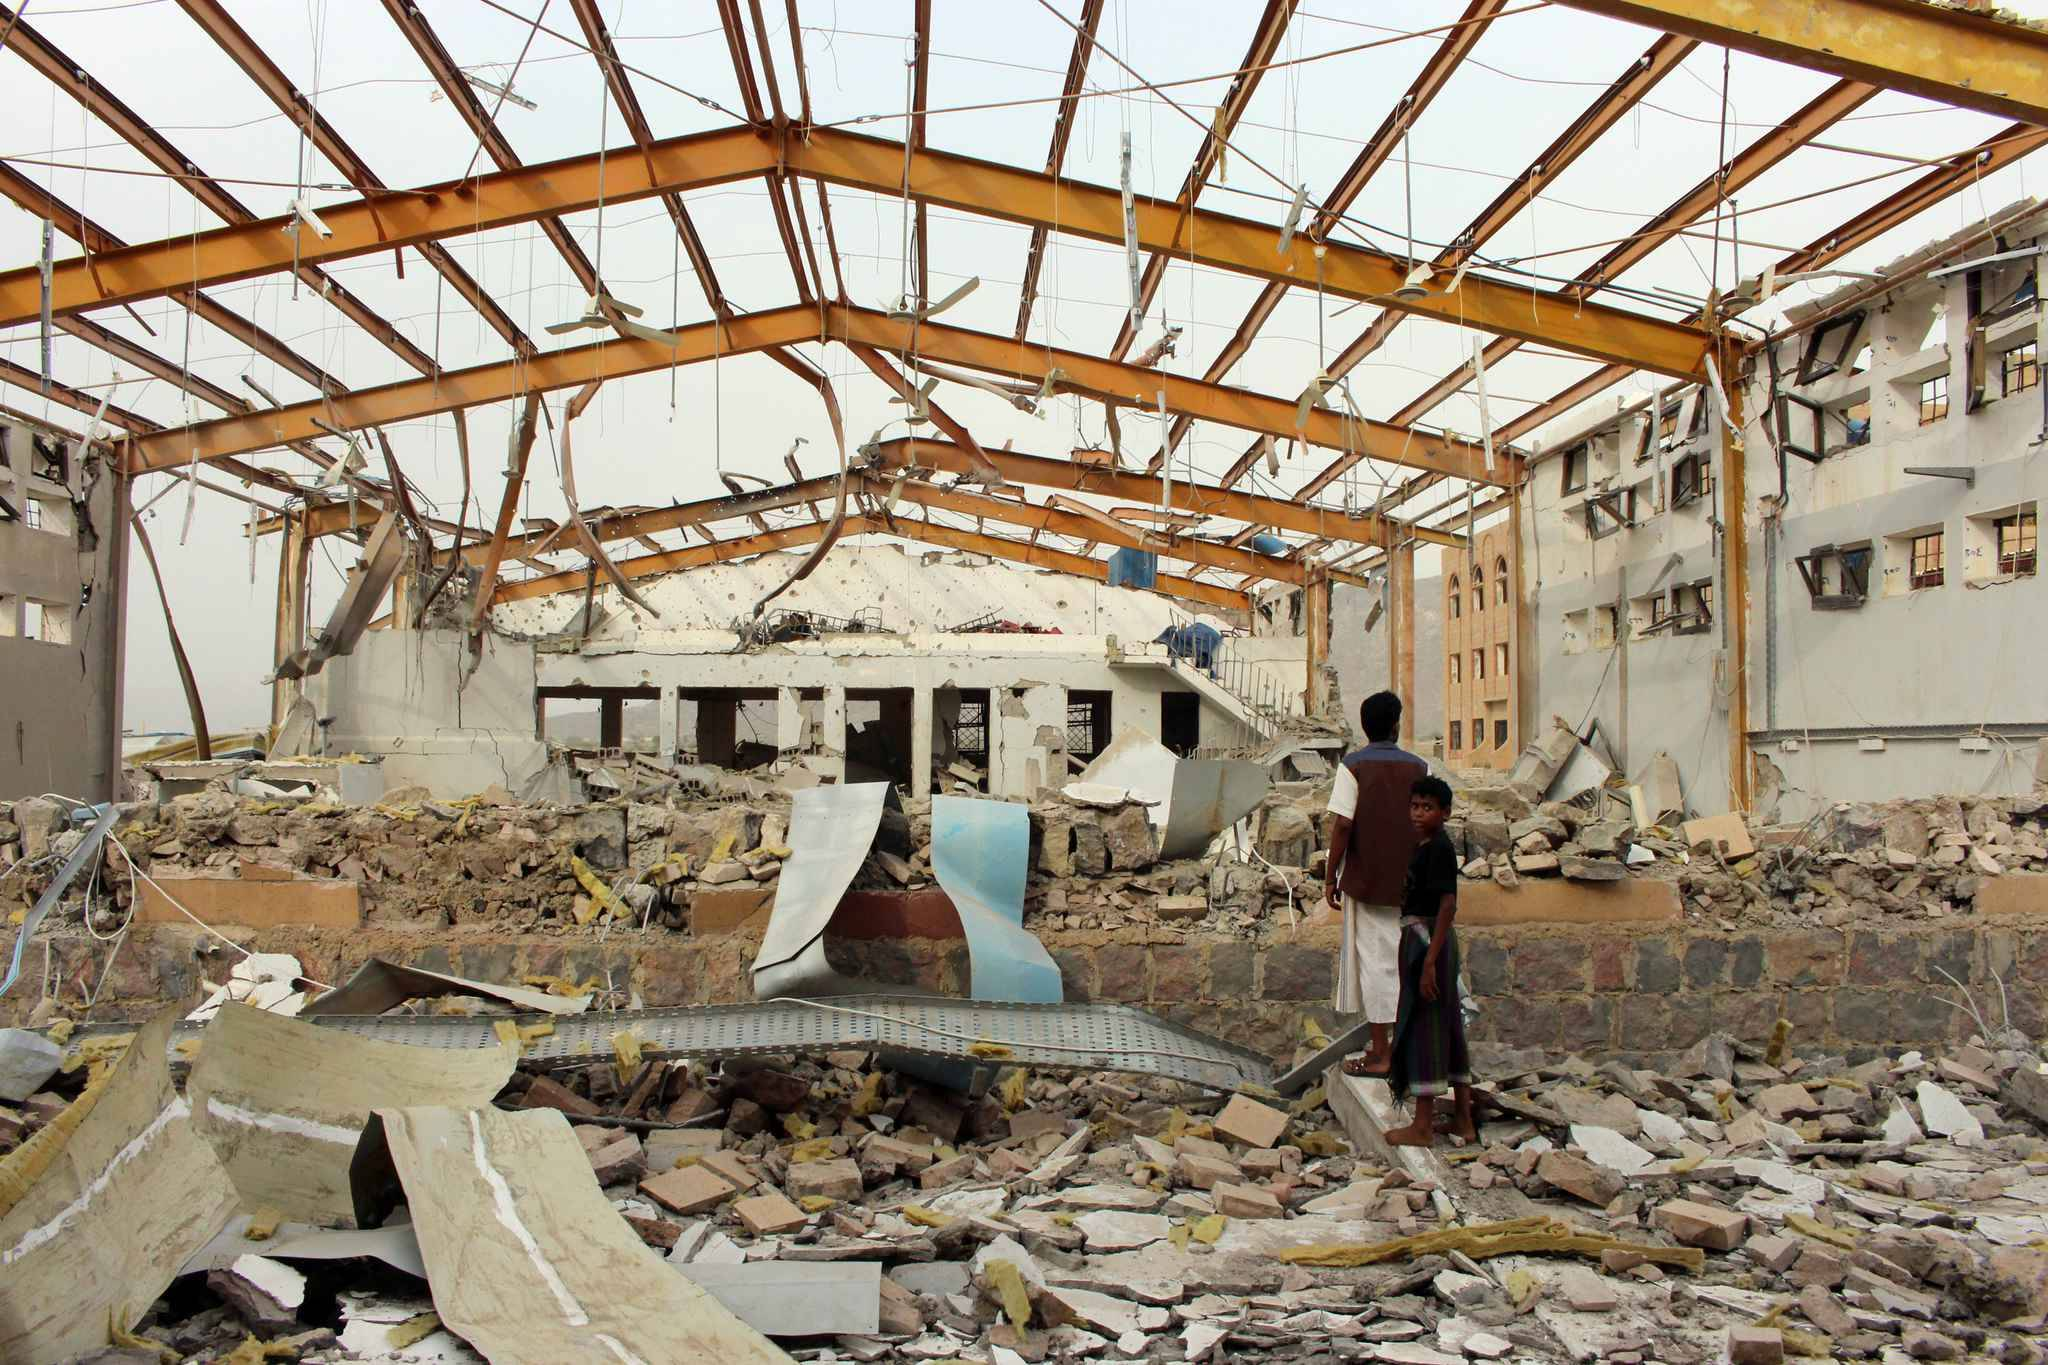 Yemenis inspect the damage caused by a Saudi-led air strike on a cholera treatment centrer supported by Doctors Without Borders (MSF) in the Abs region of Yemen on June 11, 2018. MSF said it has temporarily frozen operations in the rebel-held area of northwestern Yemen following the air strike which caused no casualties.